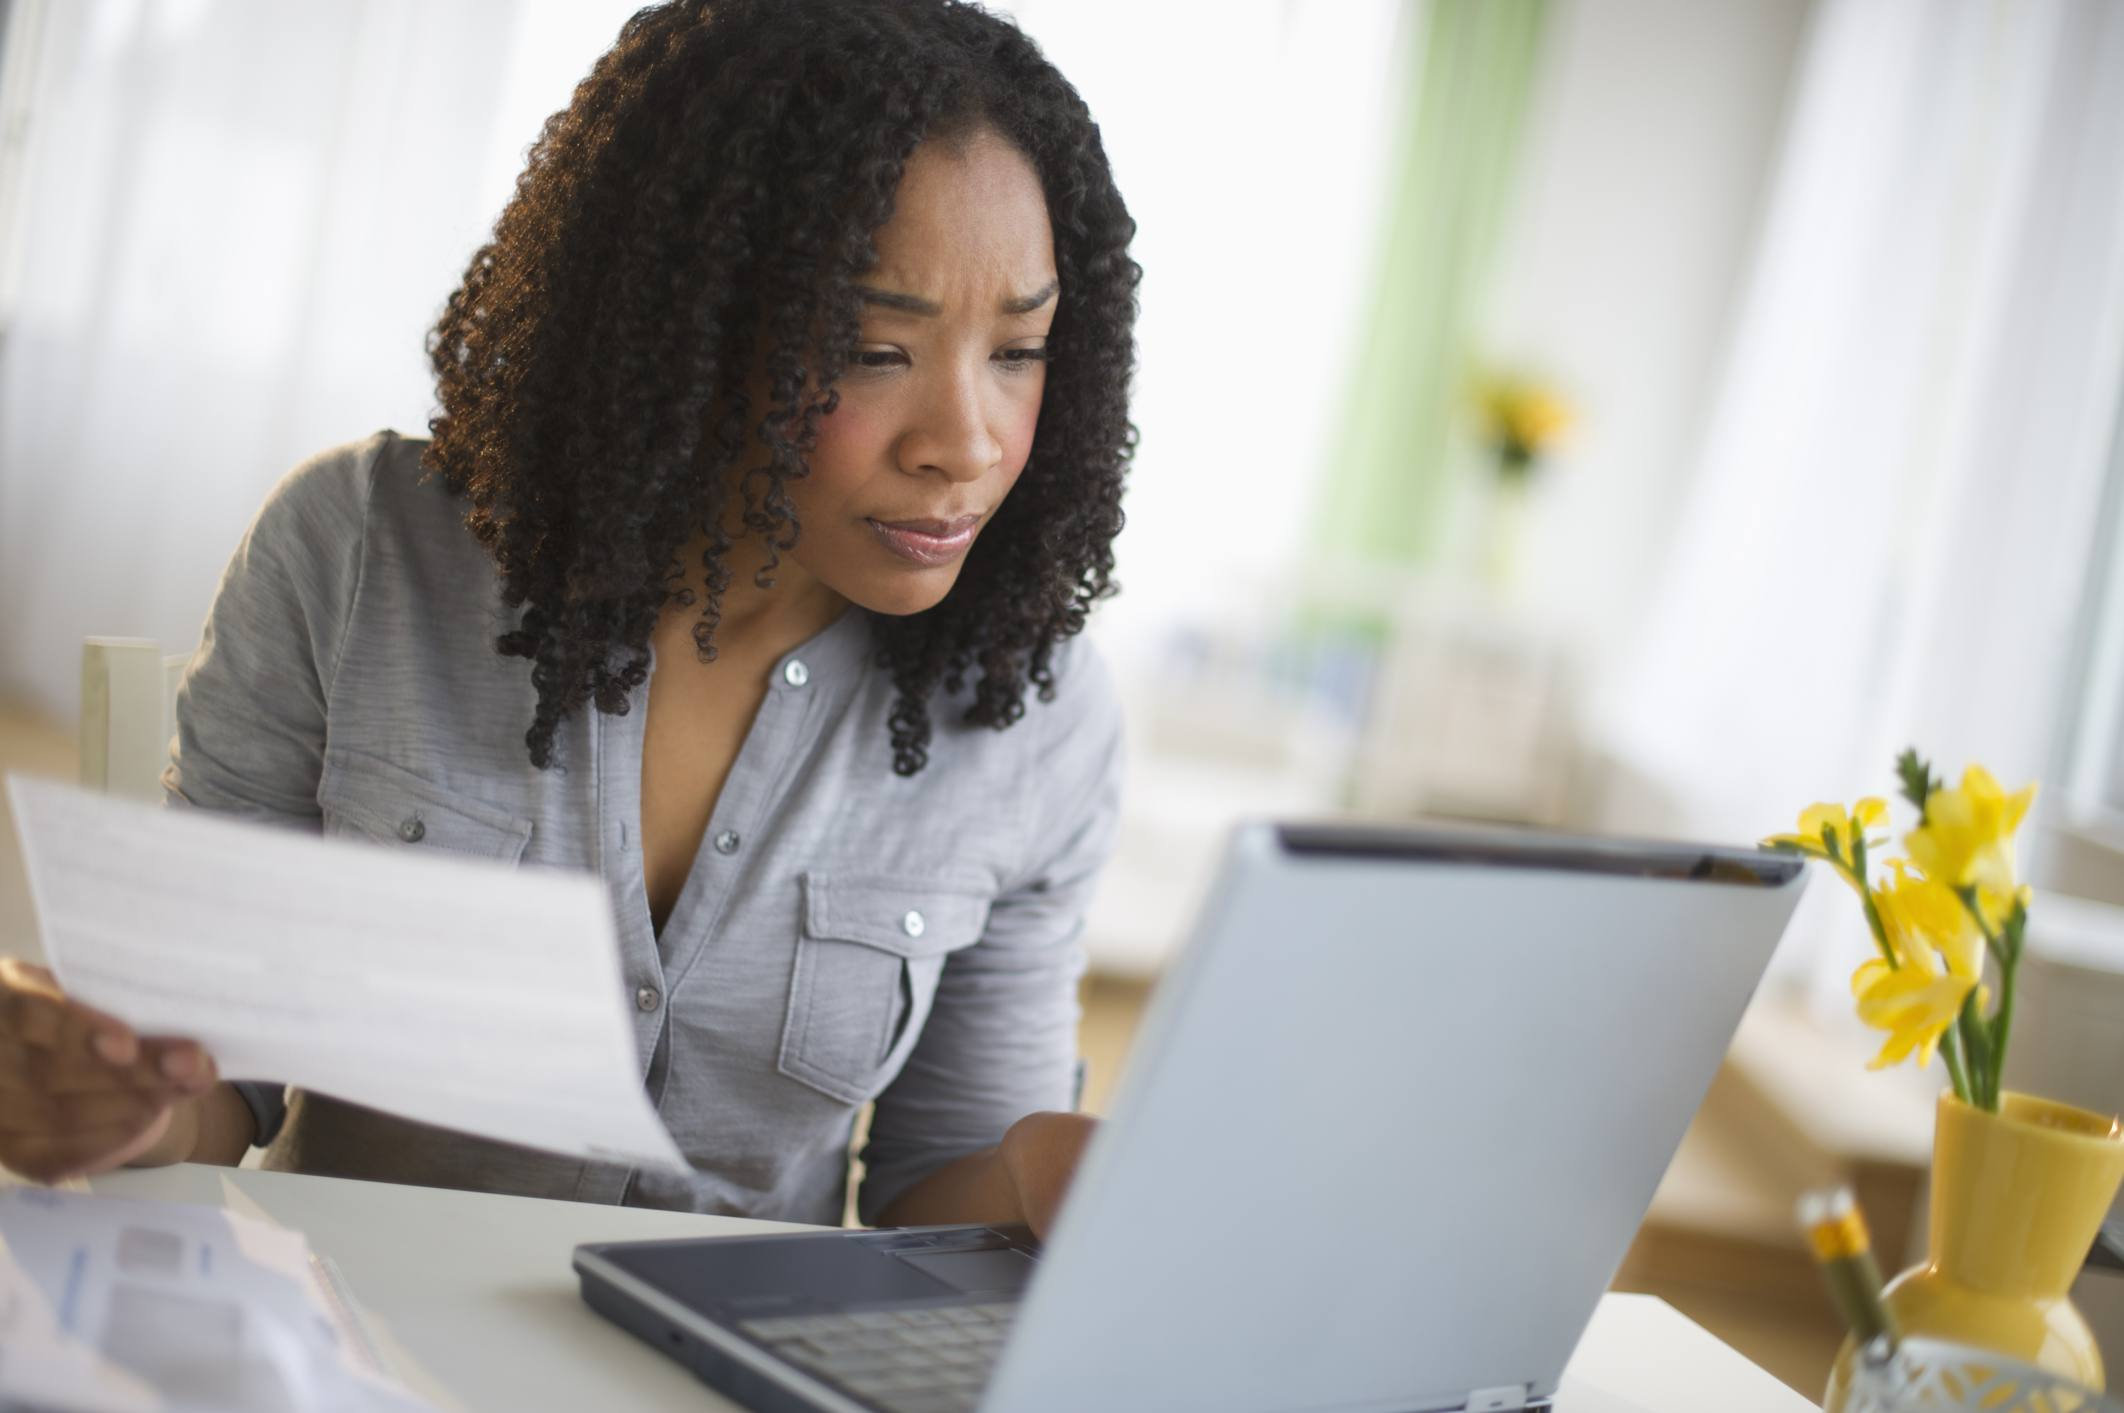 Woman paying credit card bills online to build good credit